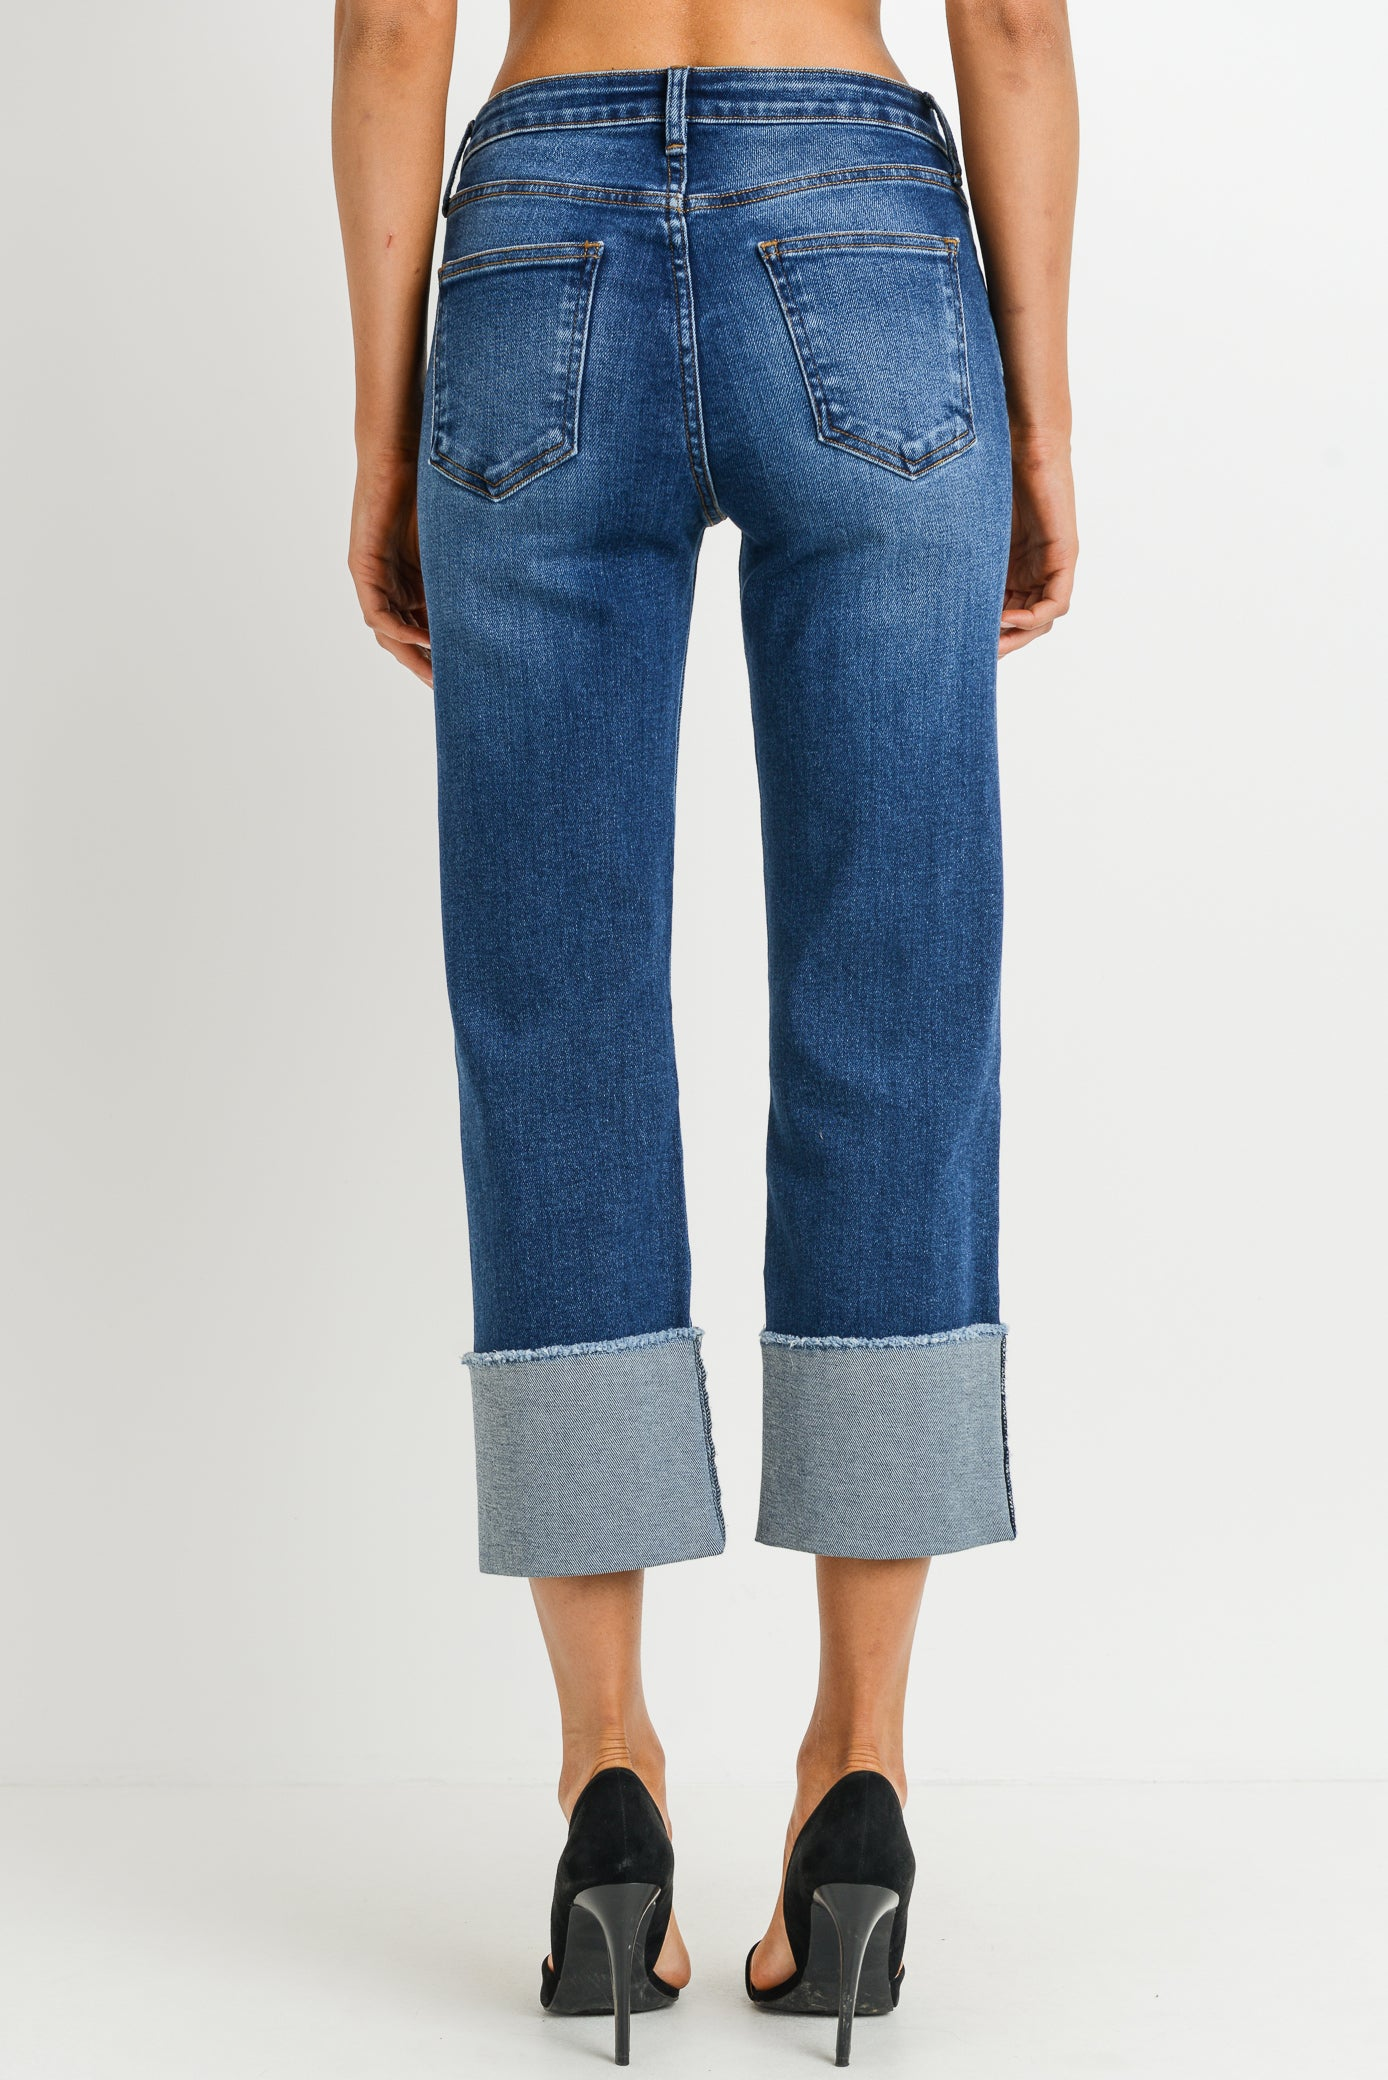 HR STRAIGHT OVERSIZED CUFF JEANS BP163J